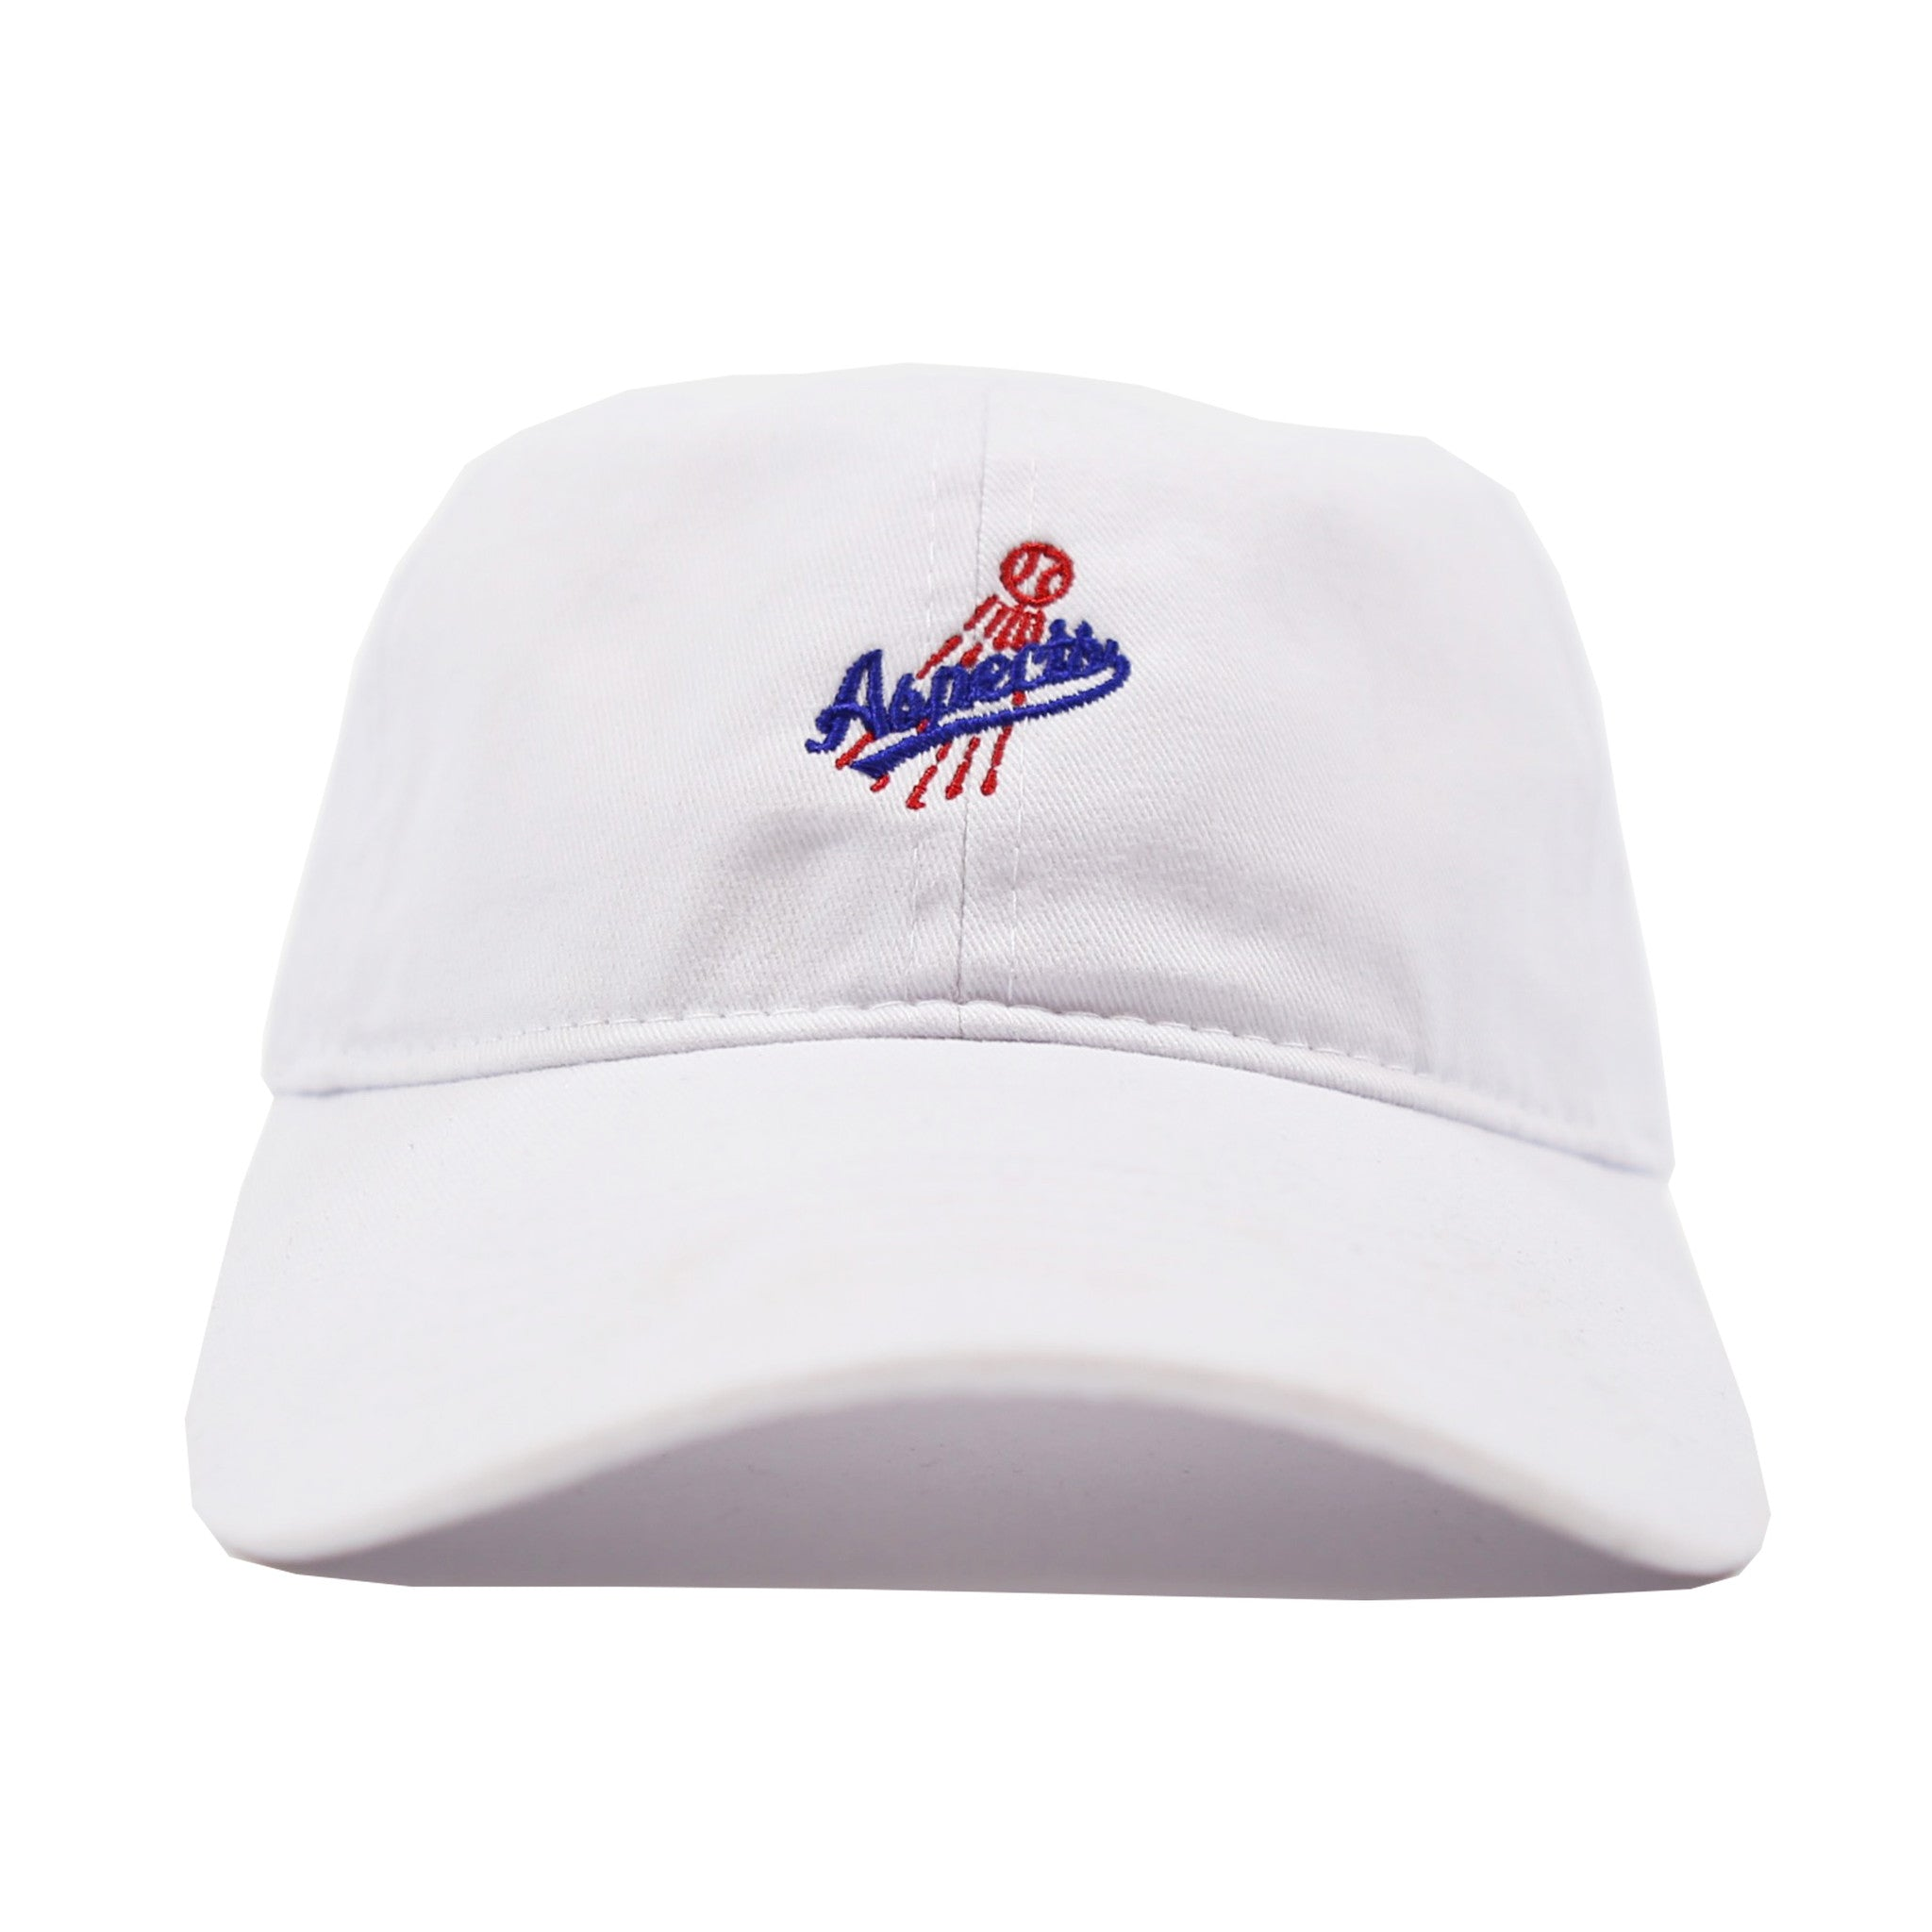 Play Ball Dad Hat - White